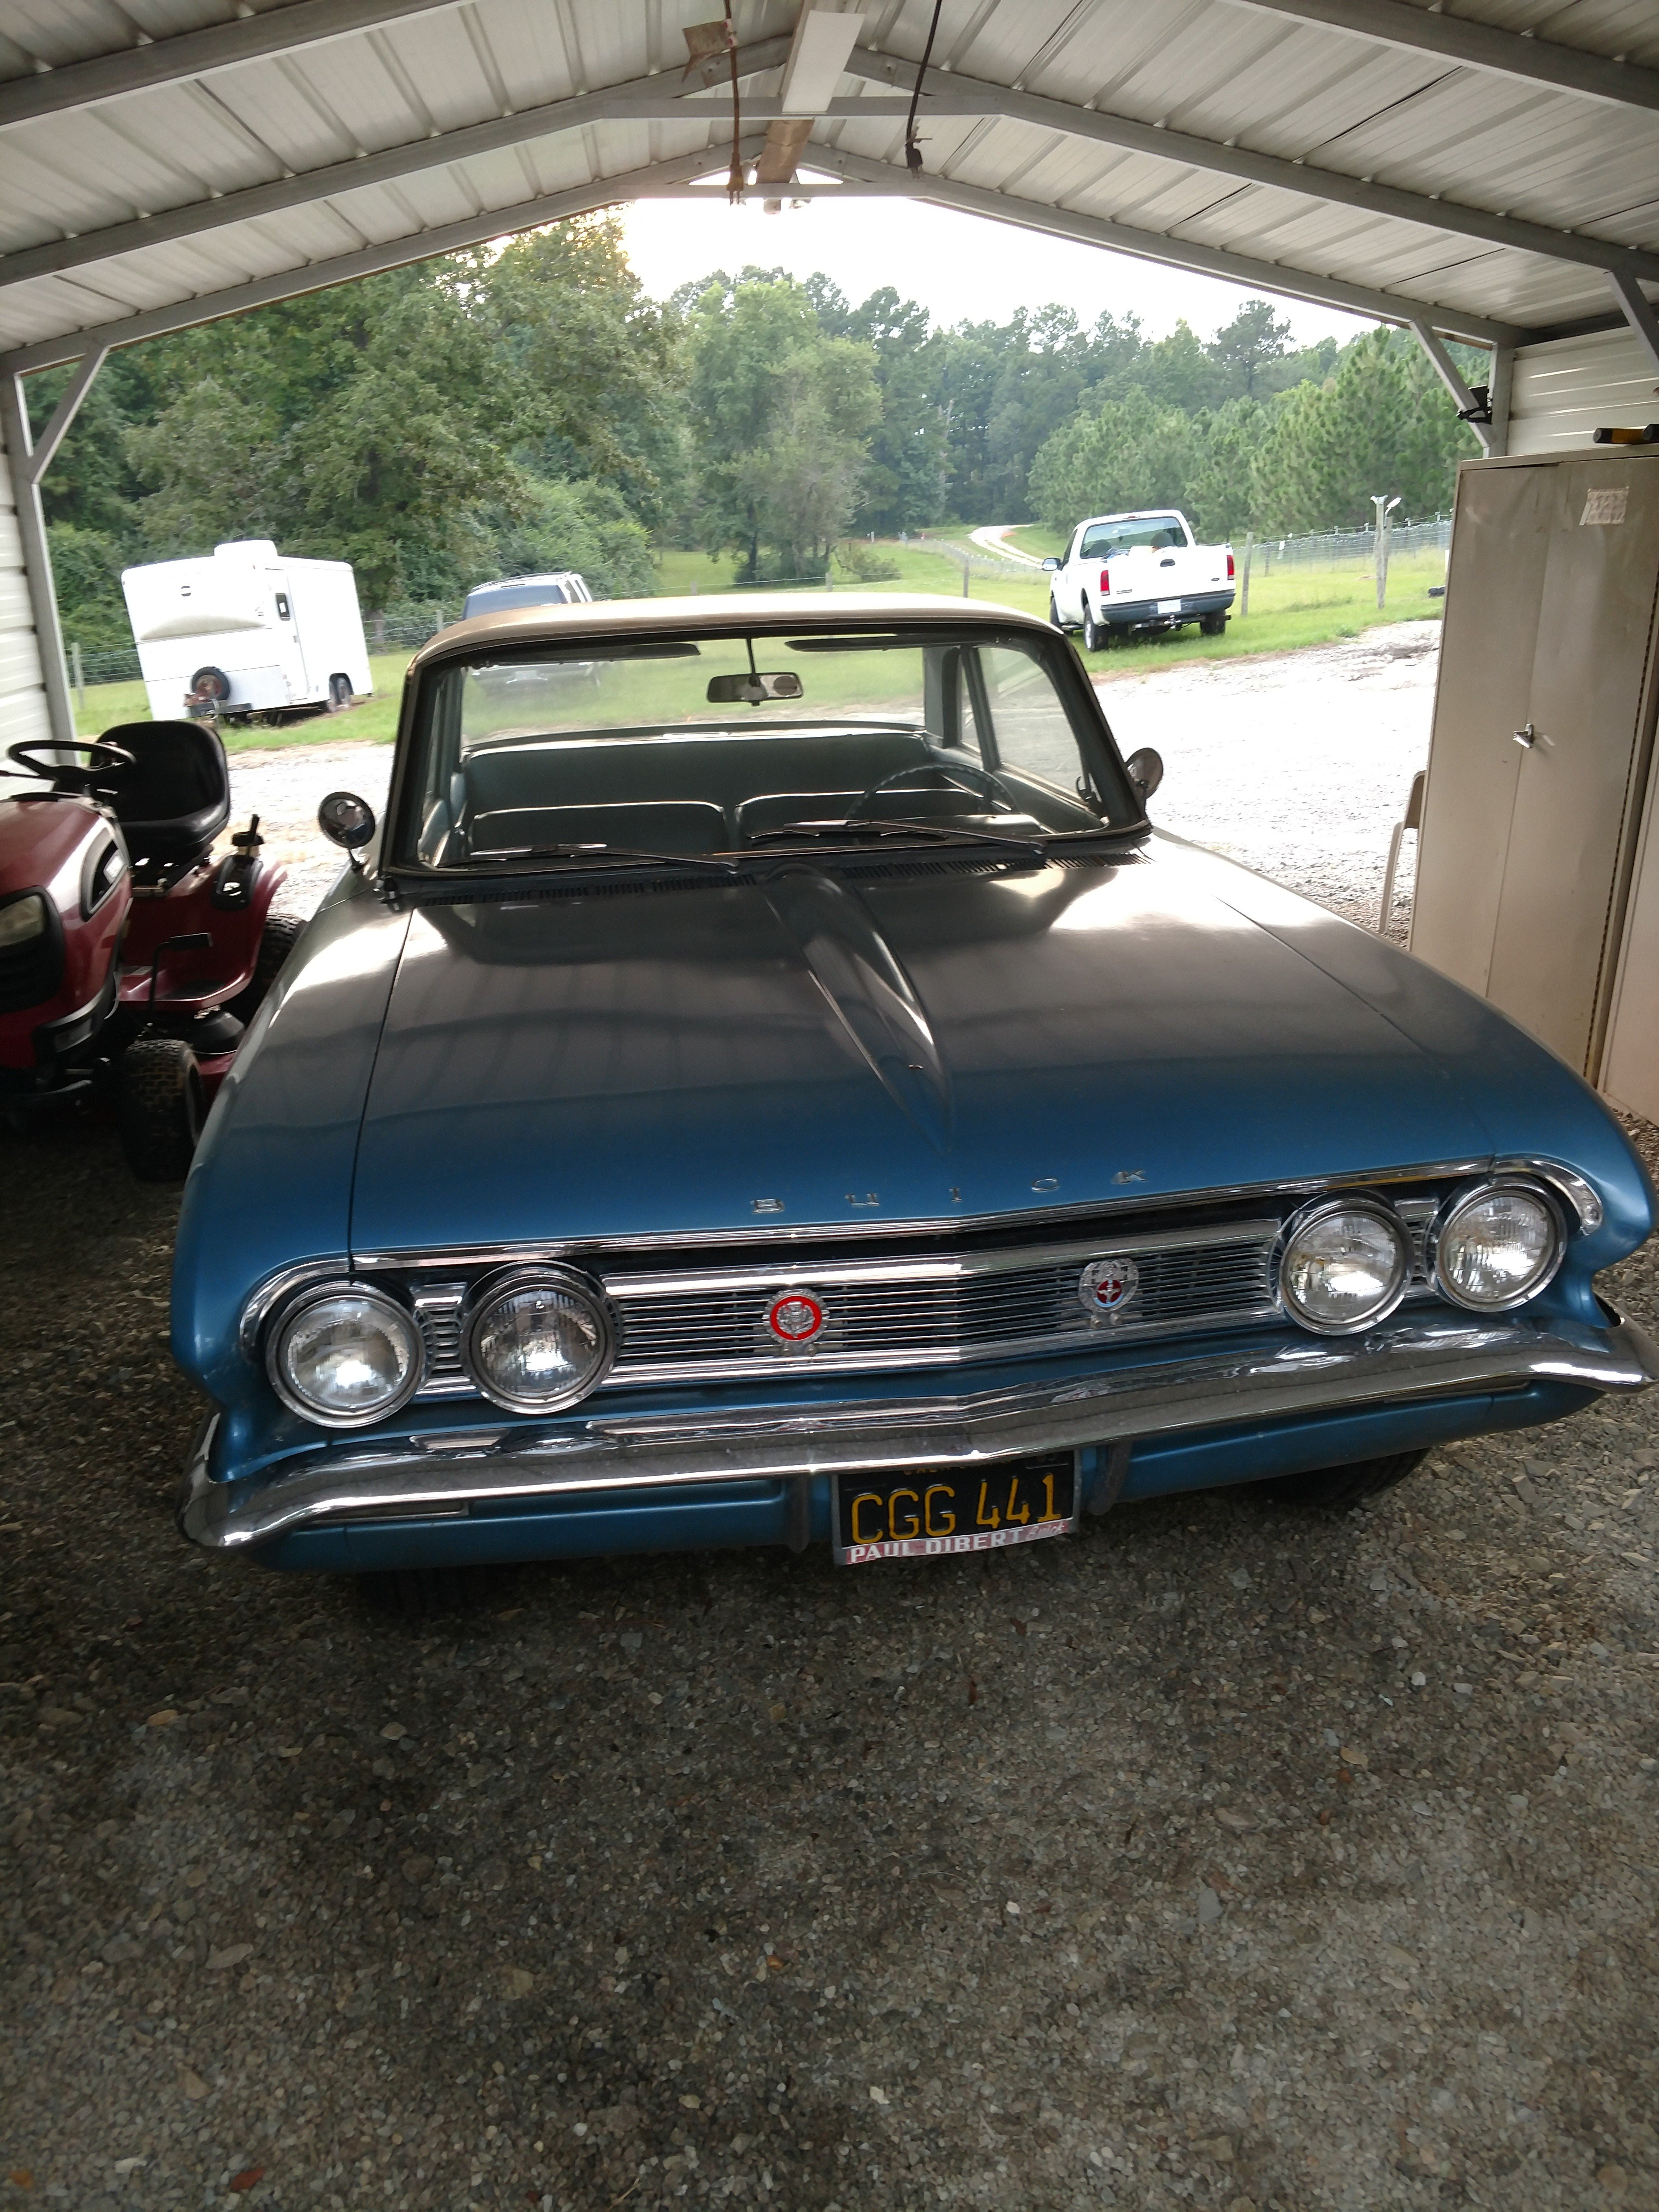 1962 Buick Special Classics For Sale On Autotrader Pertronix Electronic Ignition Wiring Diagram